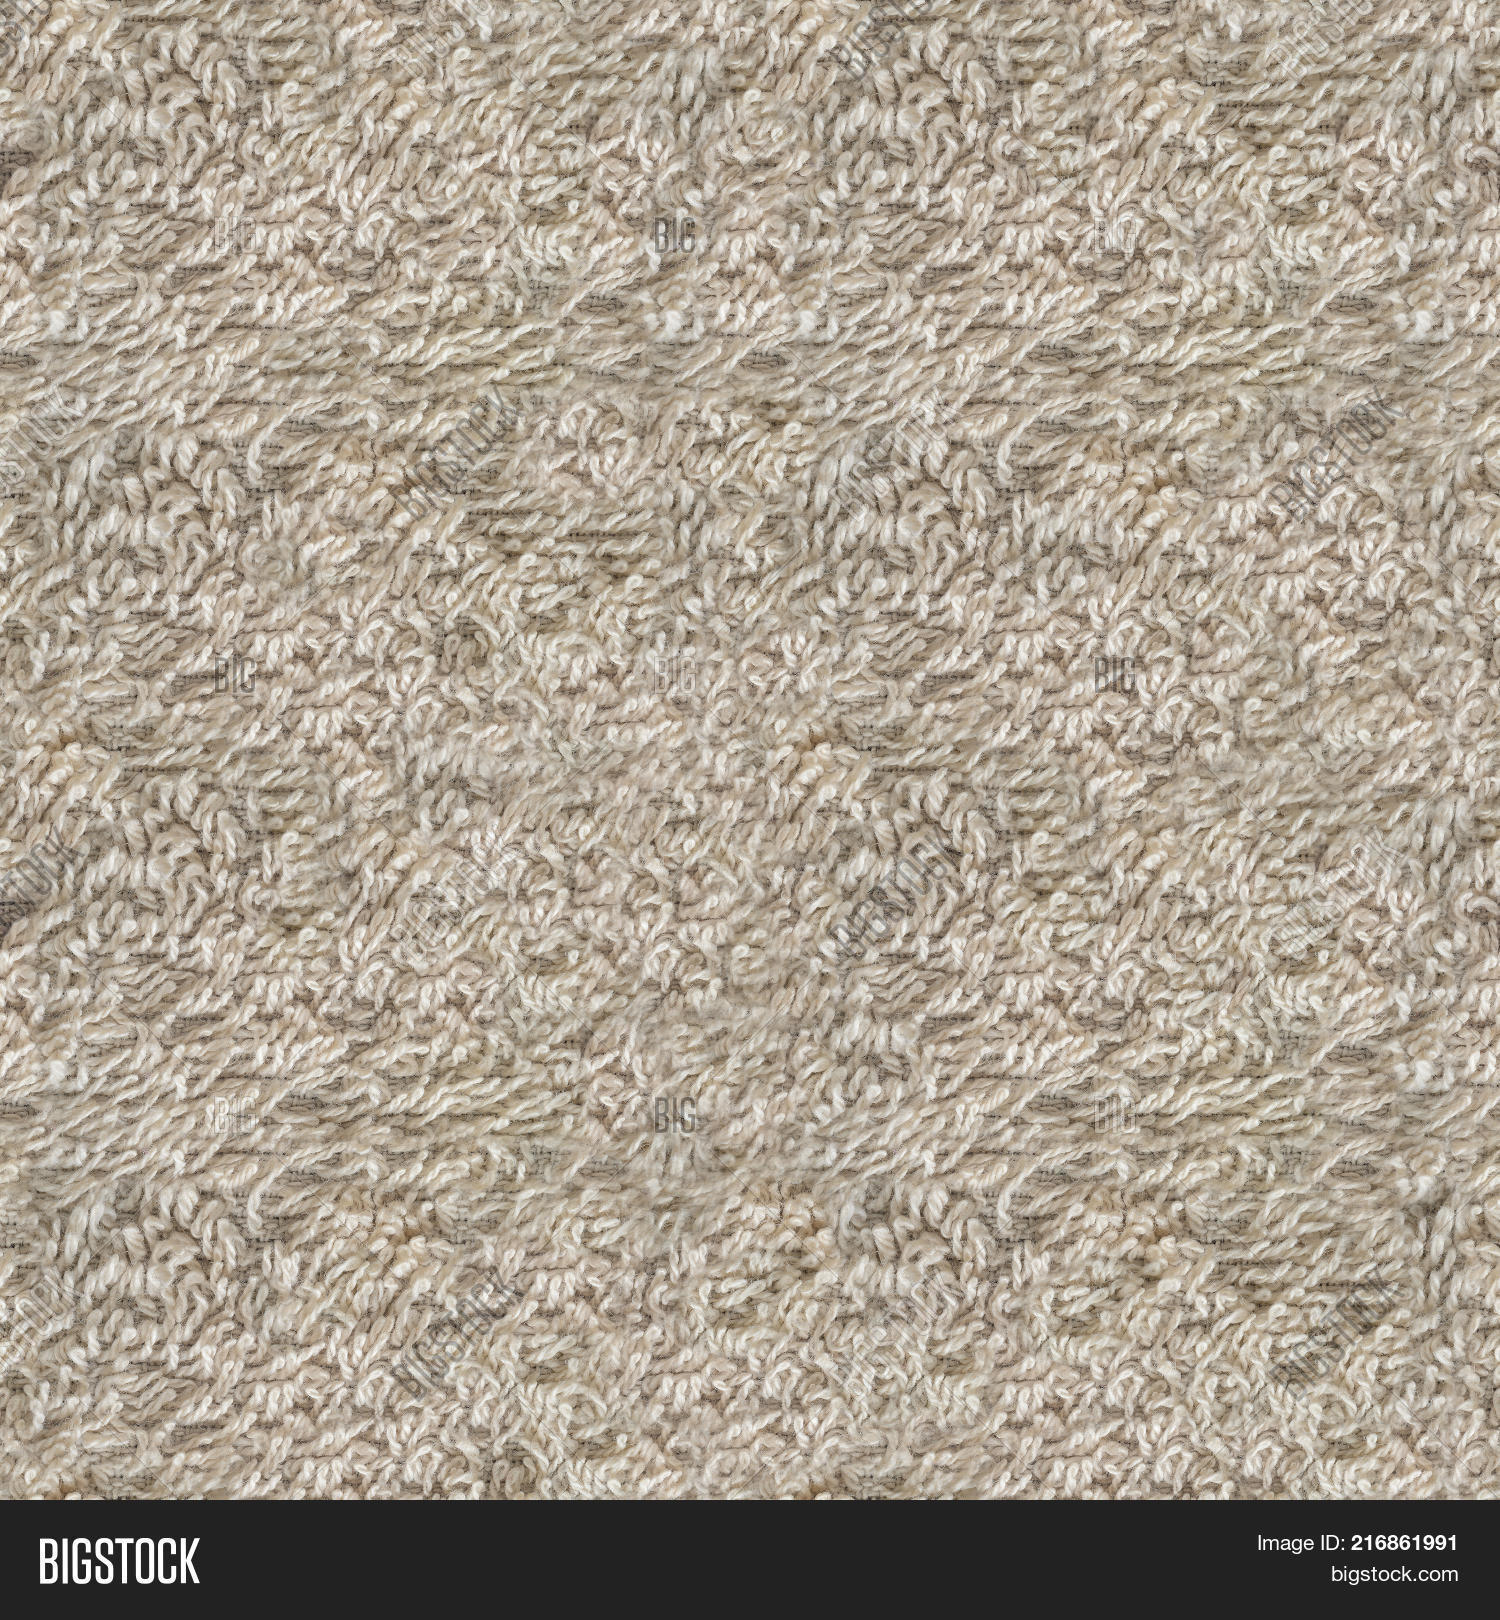 seamless carpet texture. Seamless Carpet Texture With Long Nap. Fabric Material A Pile  Beige Color. Seamless Carpet Texture